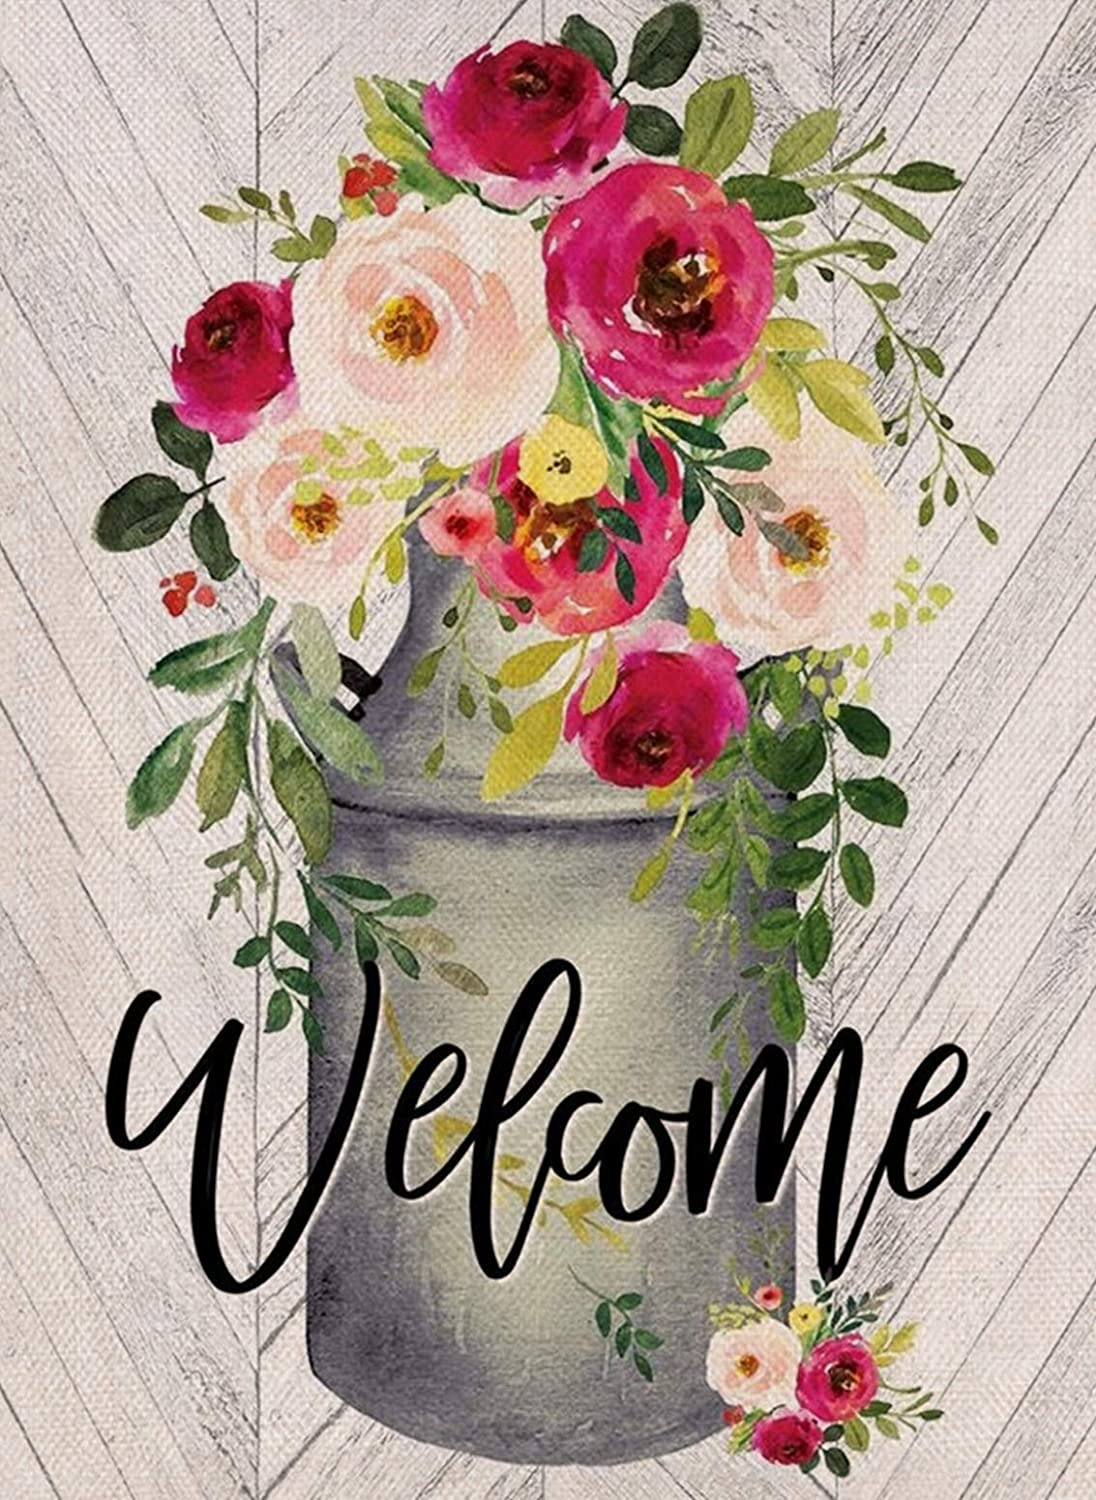 Covido Welcome Home Decorative Garden Flag, House Yard Watercolor Flowers Decor Autumn Outdoor Small Flag Peony Sign, Vintage Farmhouse Outside Decorations Seasonal Burlap Flag Double Sided 12 x 18